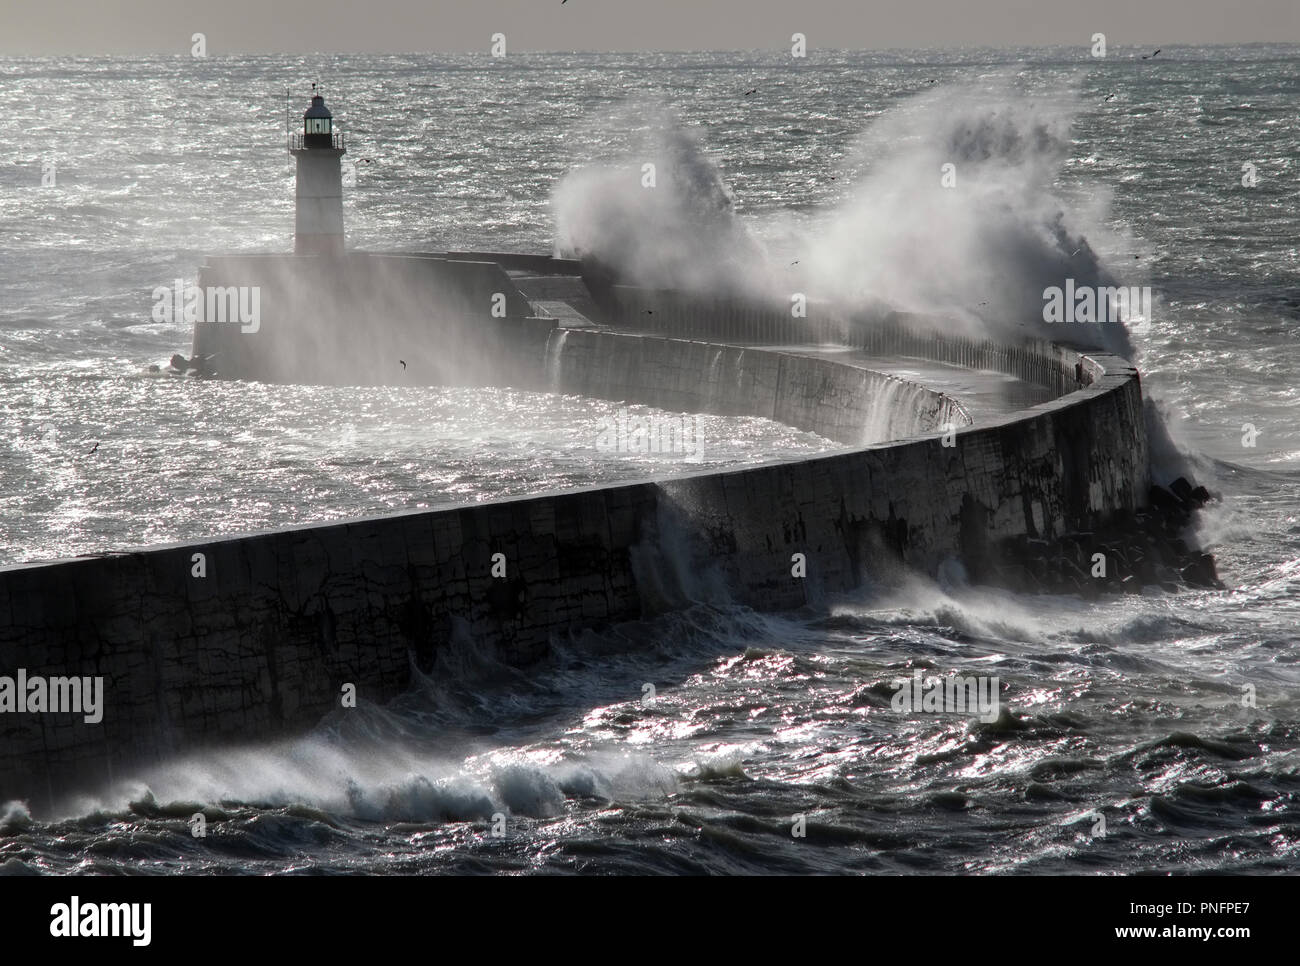 Newhaven, East Sussex, UK. 2st September 2018. Strong winds from Storm Bronagh hitting Newhaven breakwater as a ferry leaves for Dieppe, France. © Peter Cripps/Alamy Live News Stock Photo